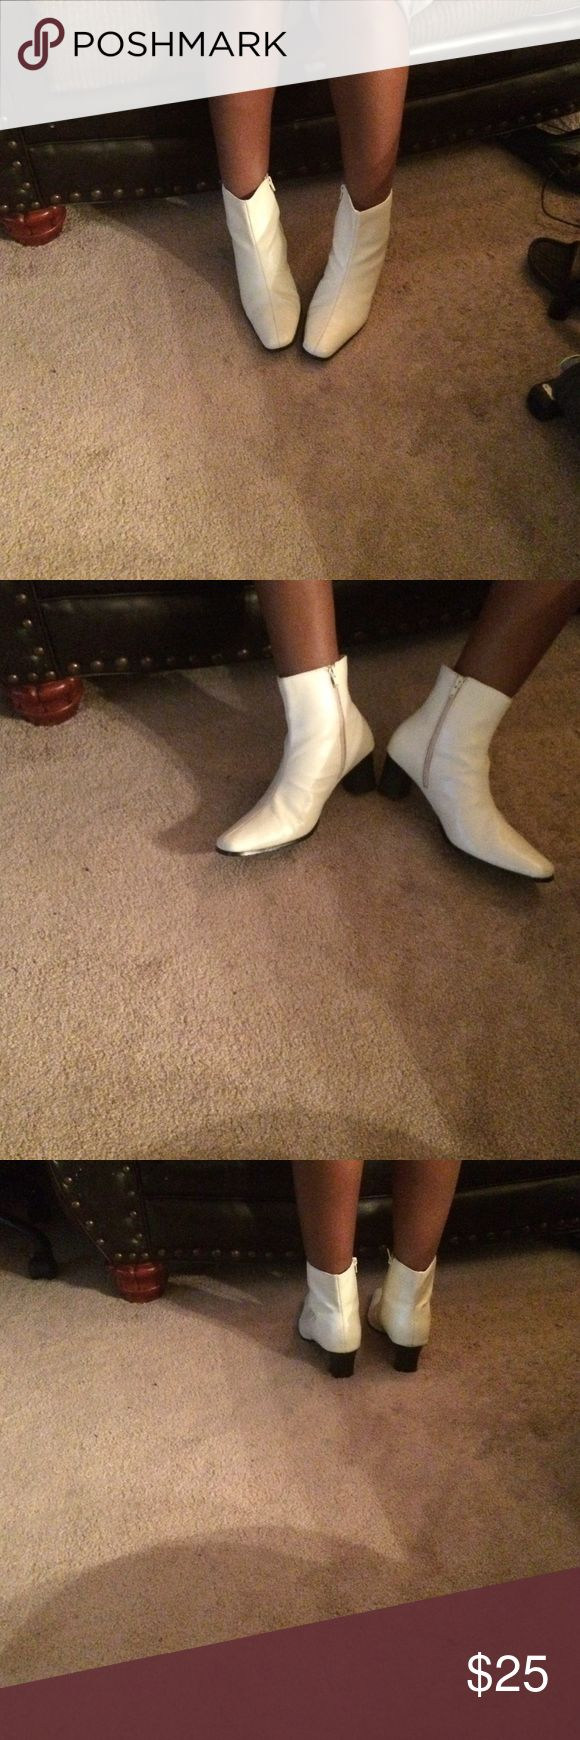 Winter white ankle boots 2 inch heel zip up on the side  around toes size 11 wide never worn pleather man made classique Shoes Ankle Boots & Booties